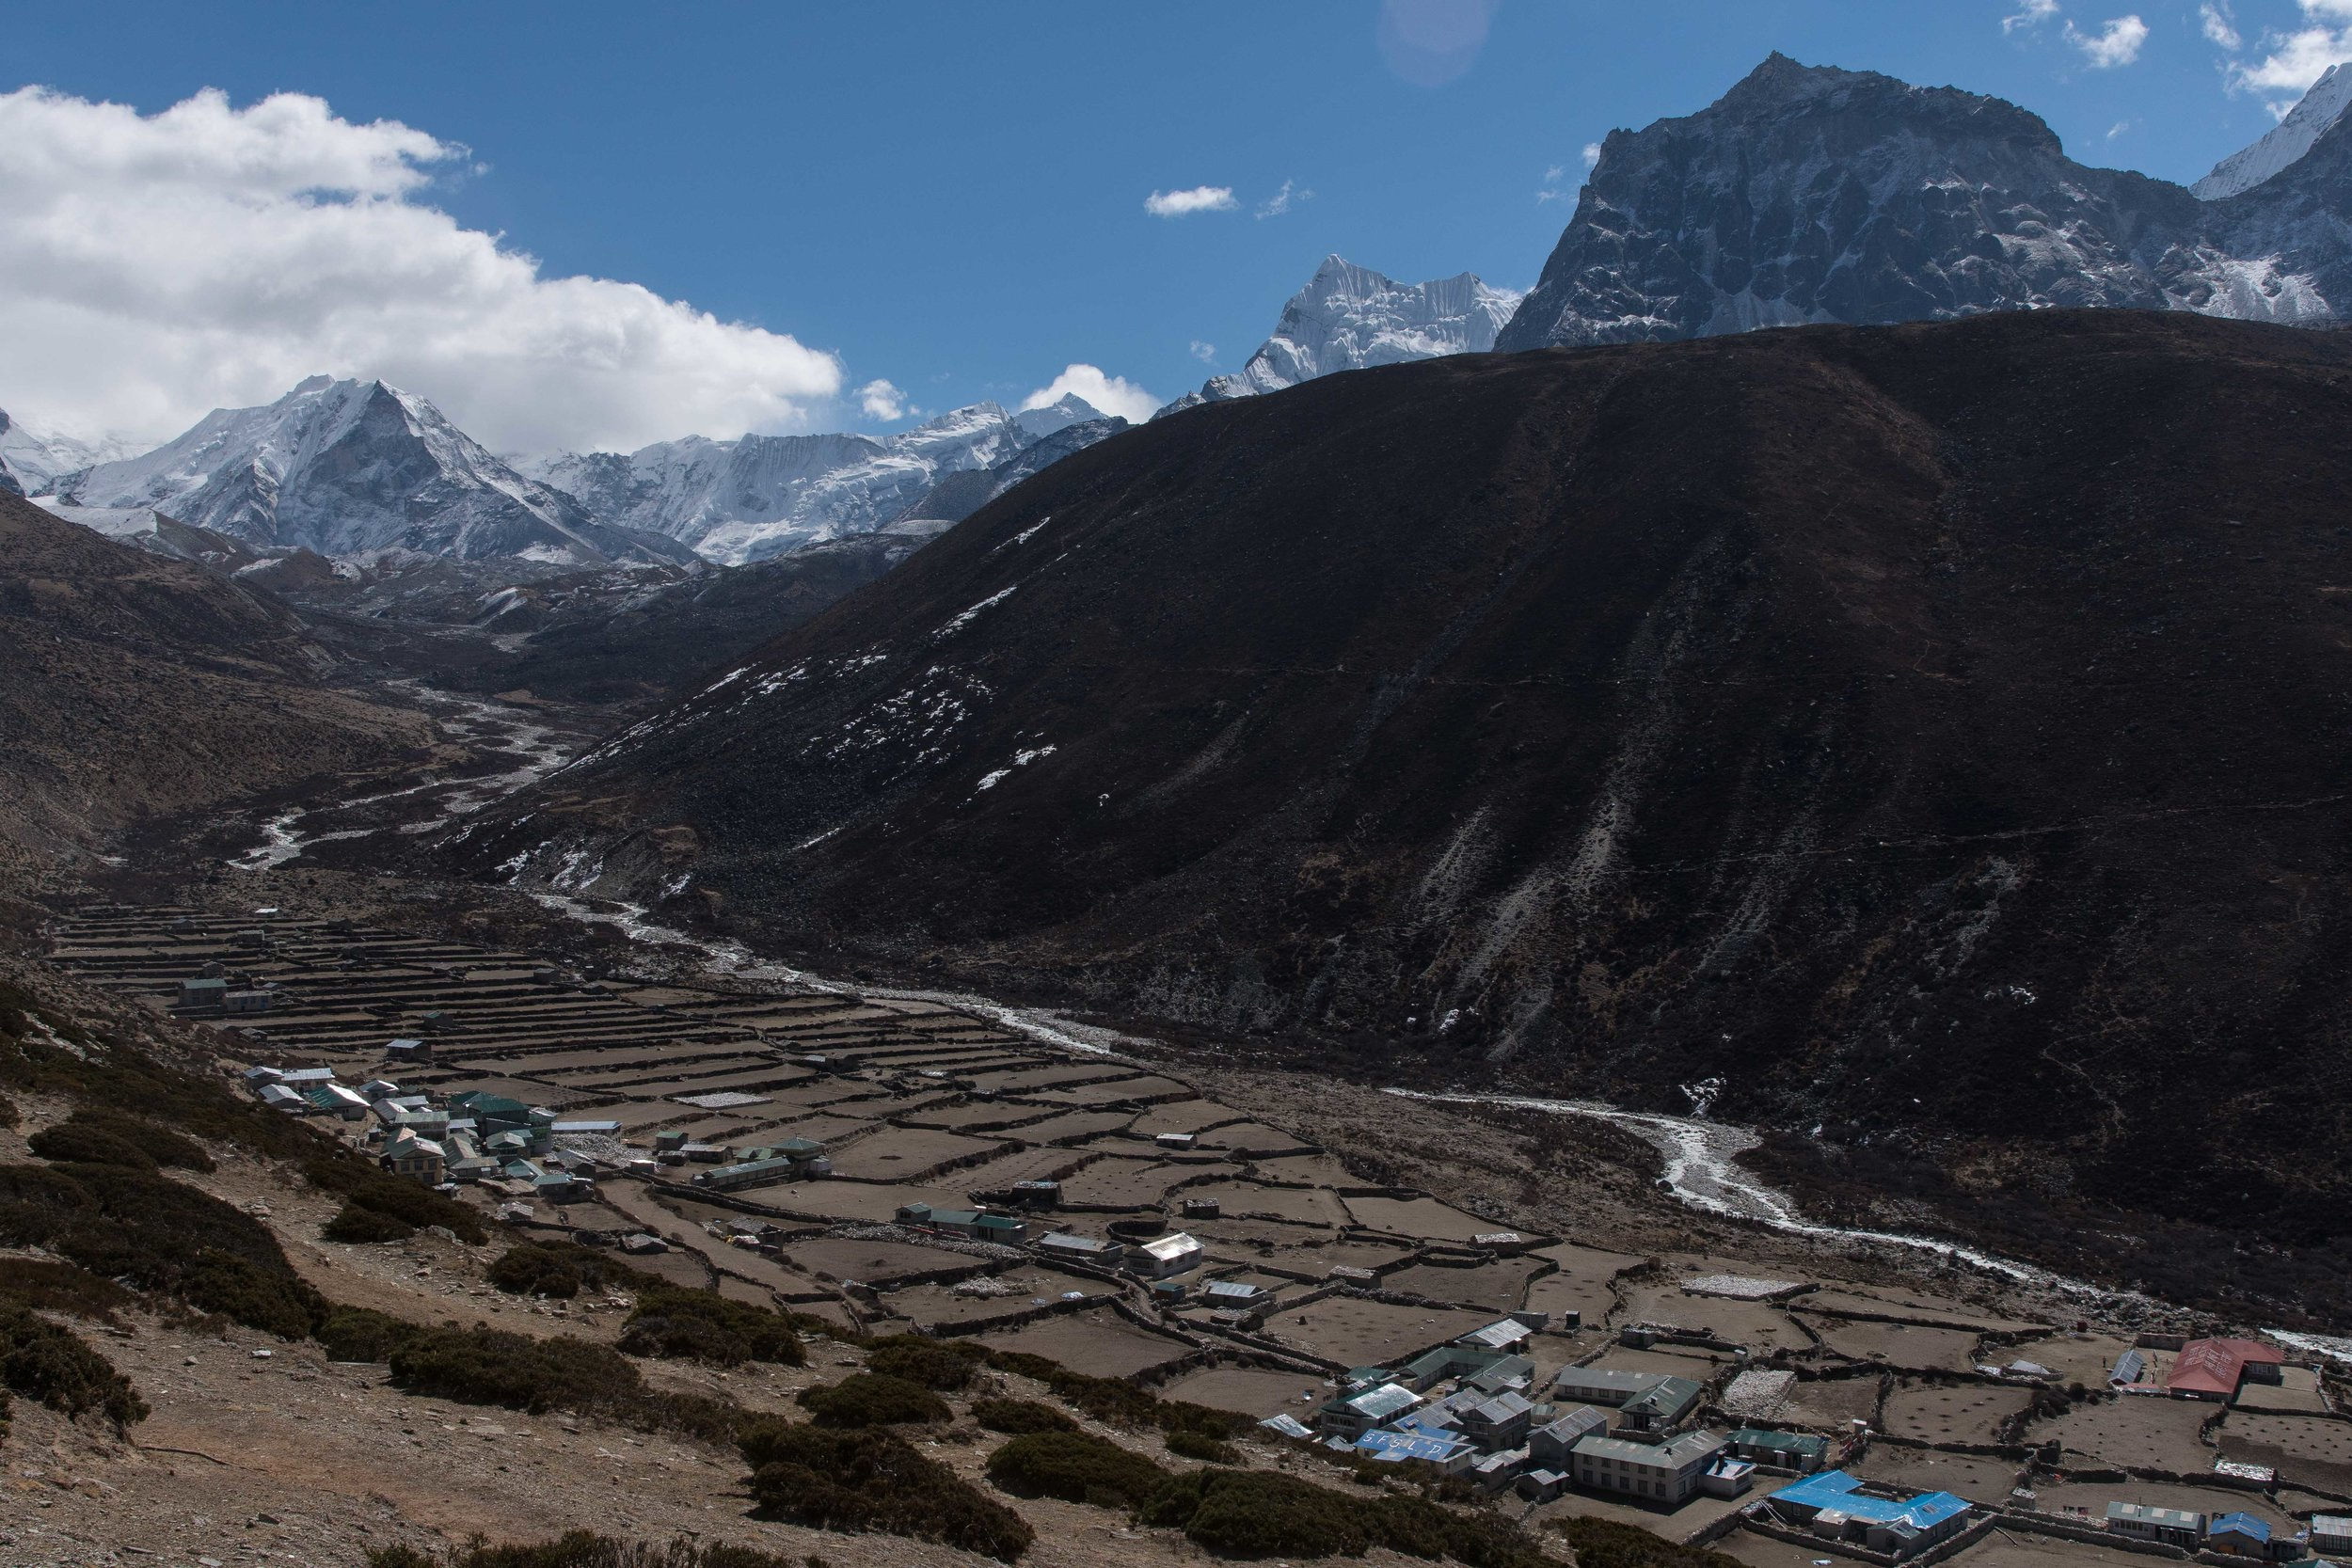 Dingboche with Island Peak in the background